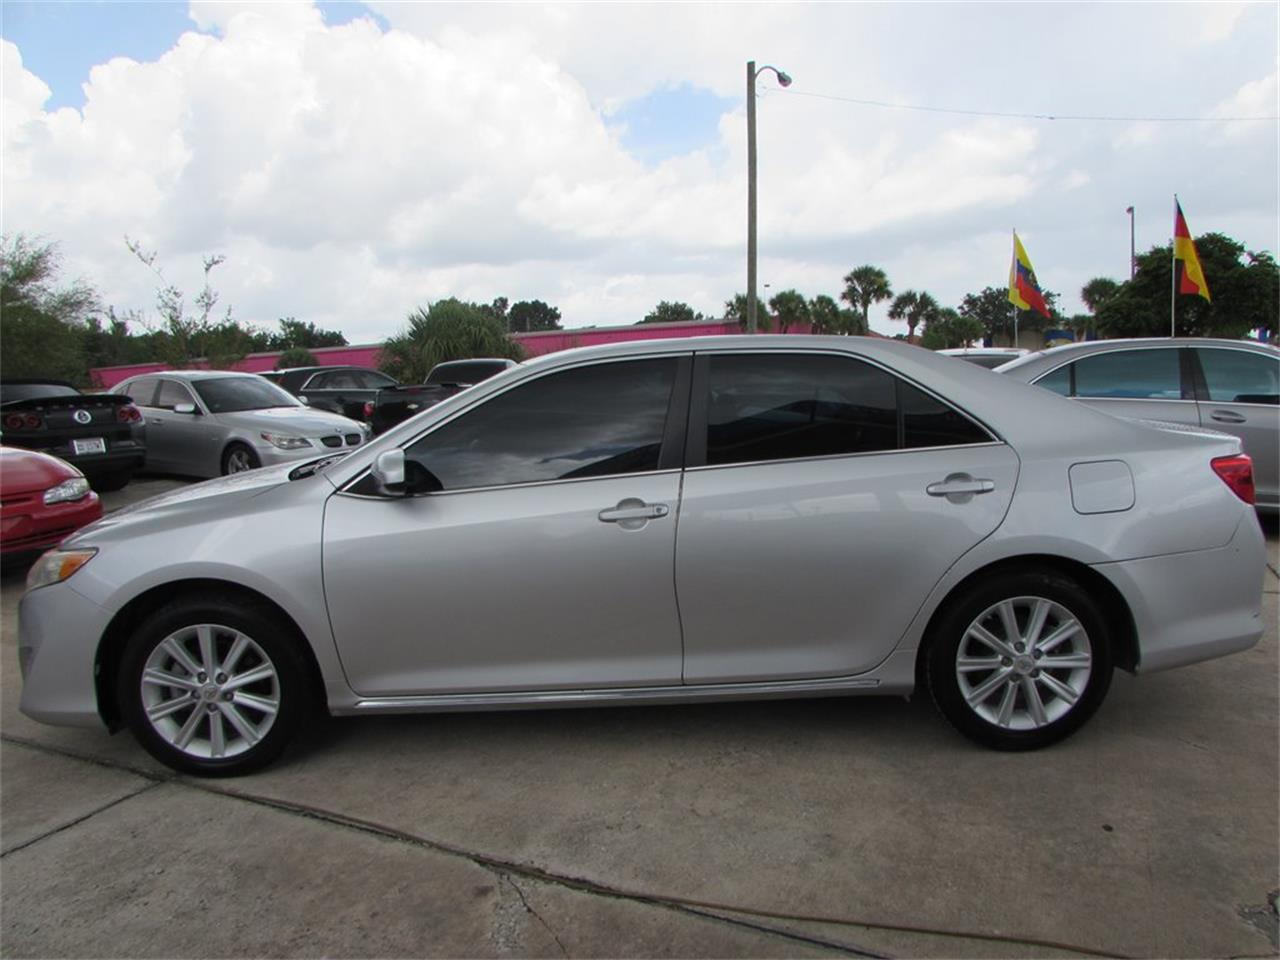 Large Picture of 2012 Toyota Camry - $10,500.00 Offered by Auto Express - QBF0